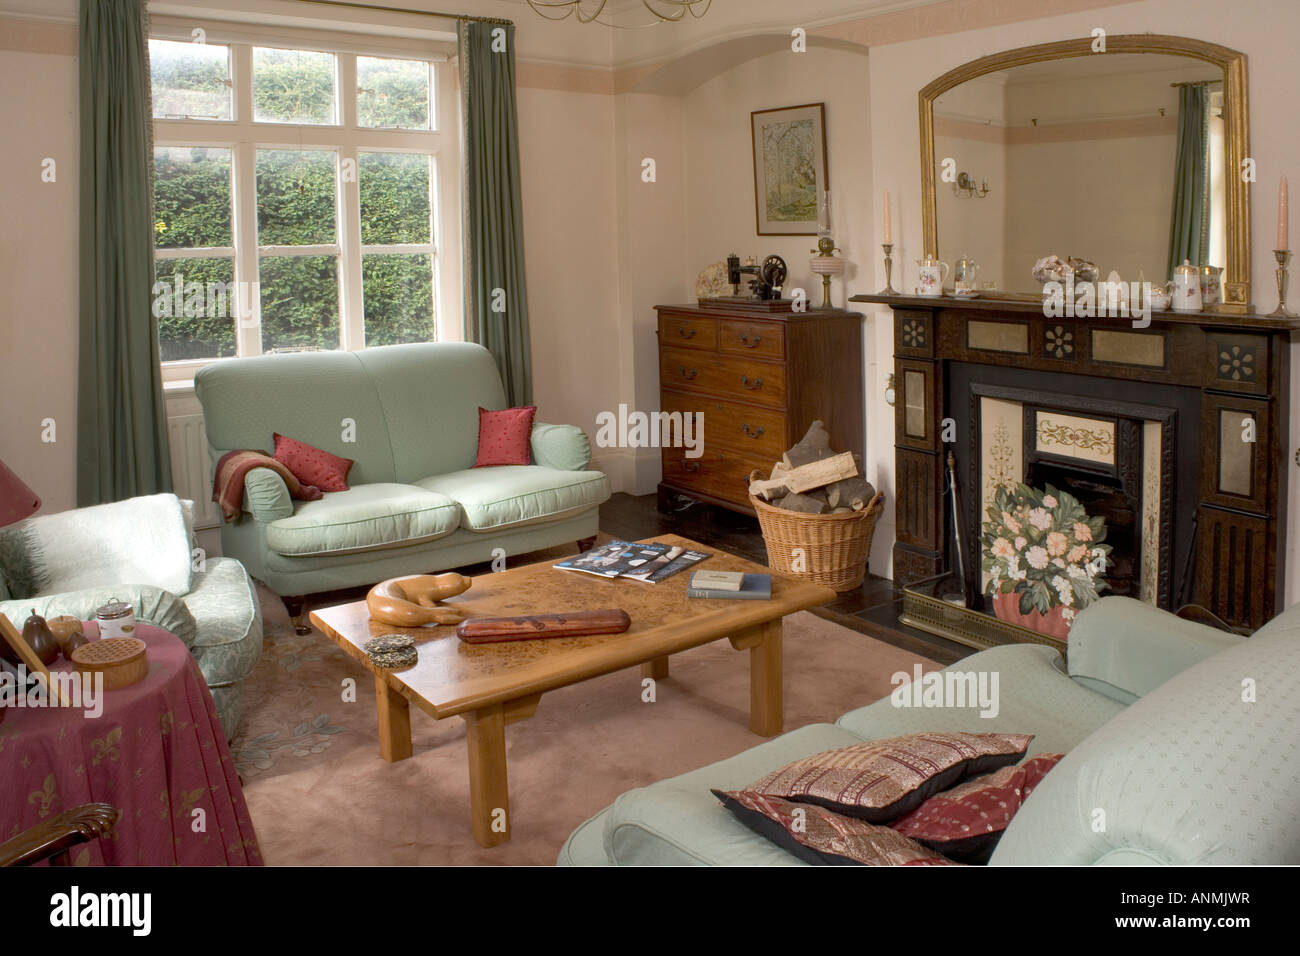 Cosy Traditional Sitting Room Interior